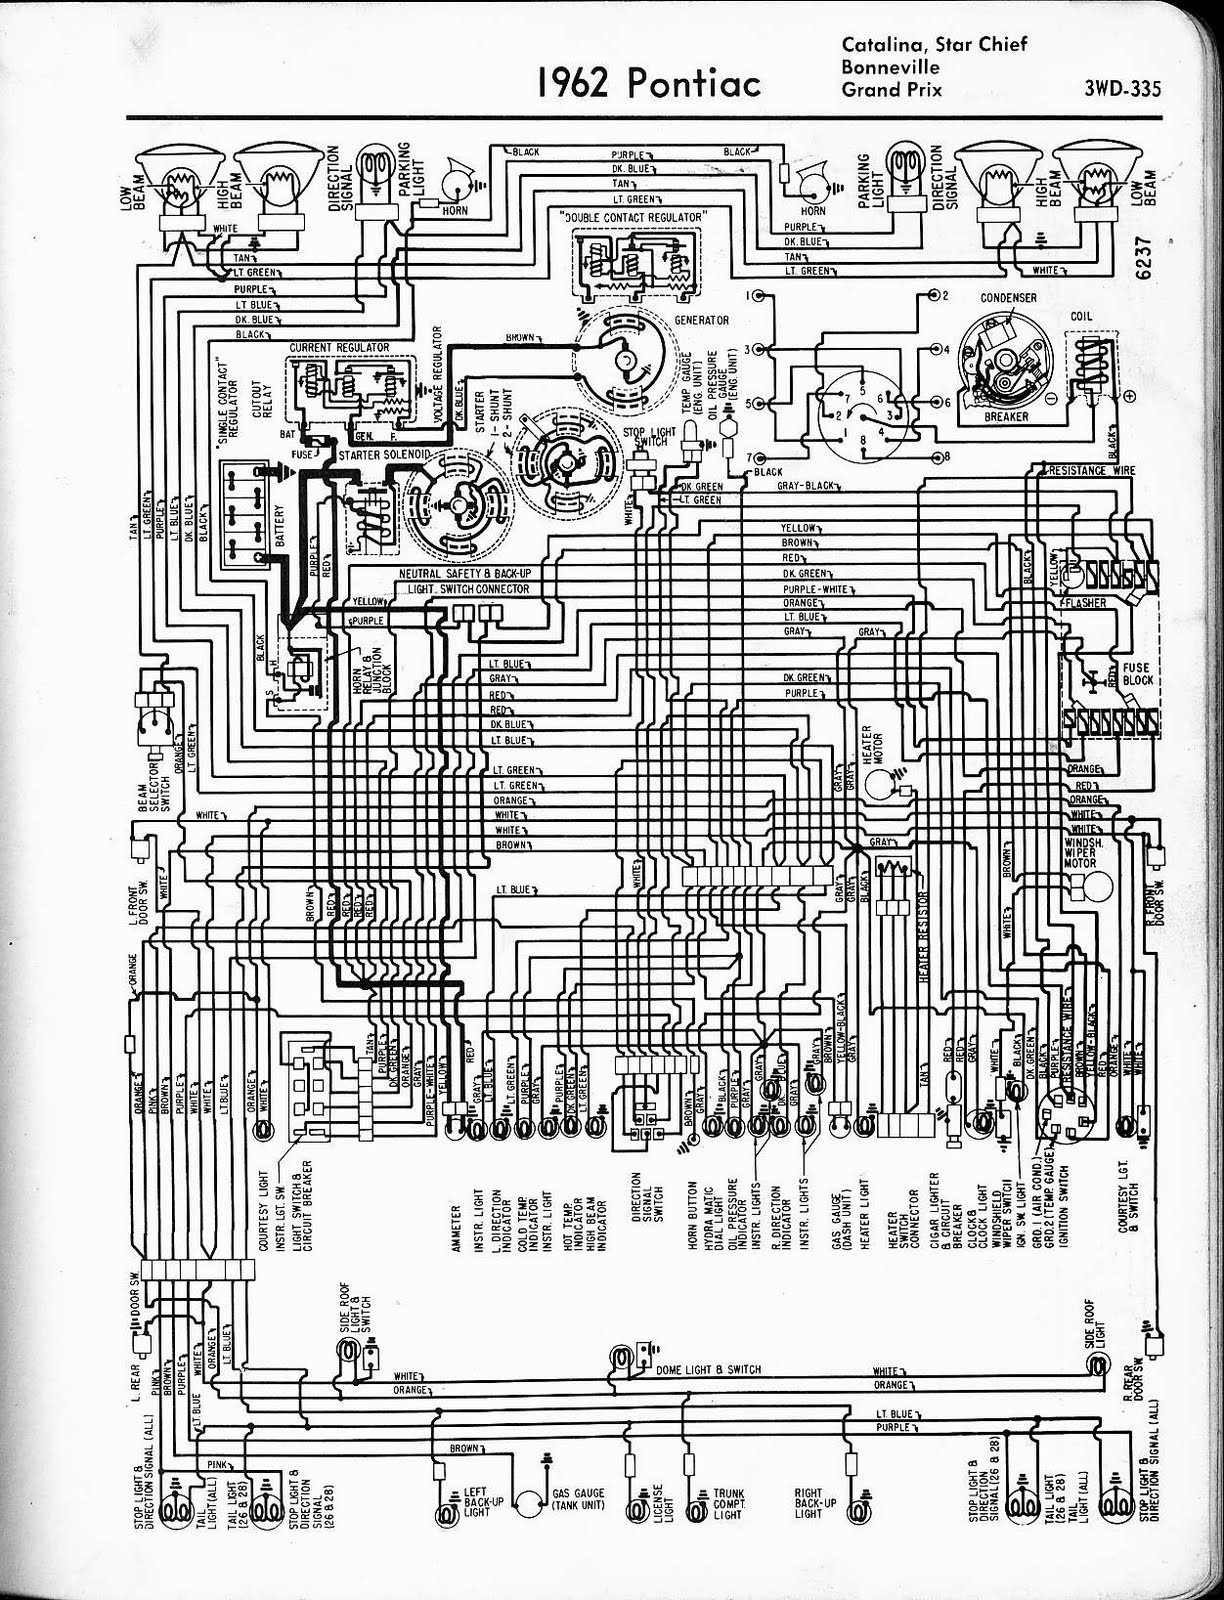 70 pontiac wiring diagram - free download wiring diagrams schematics, Wiring diagram